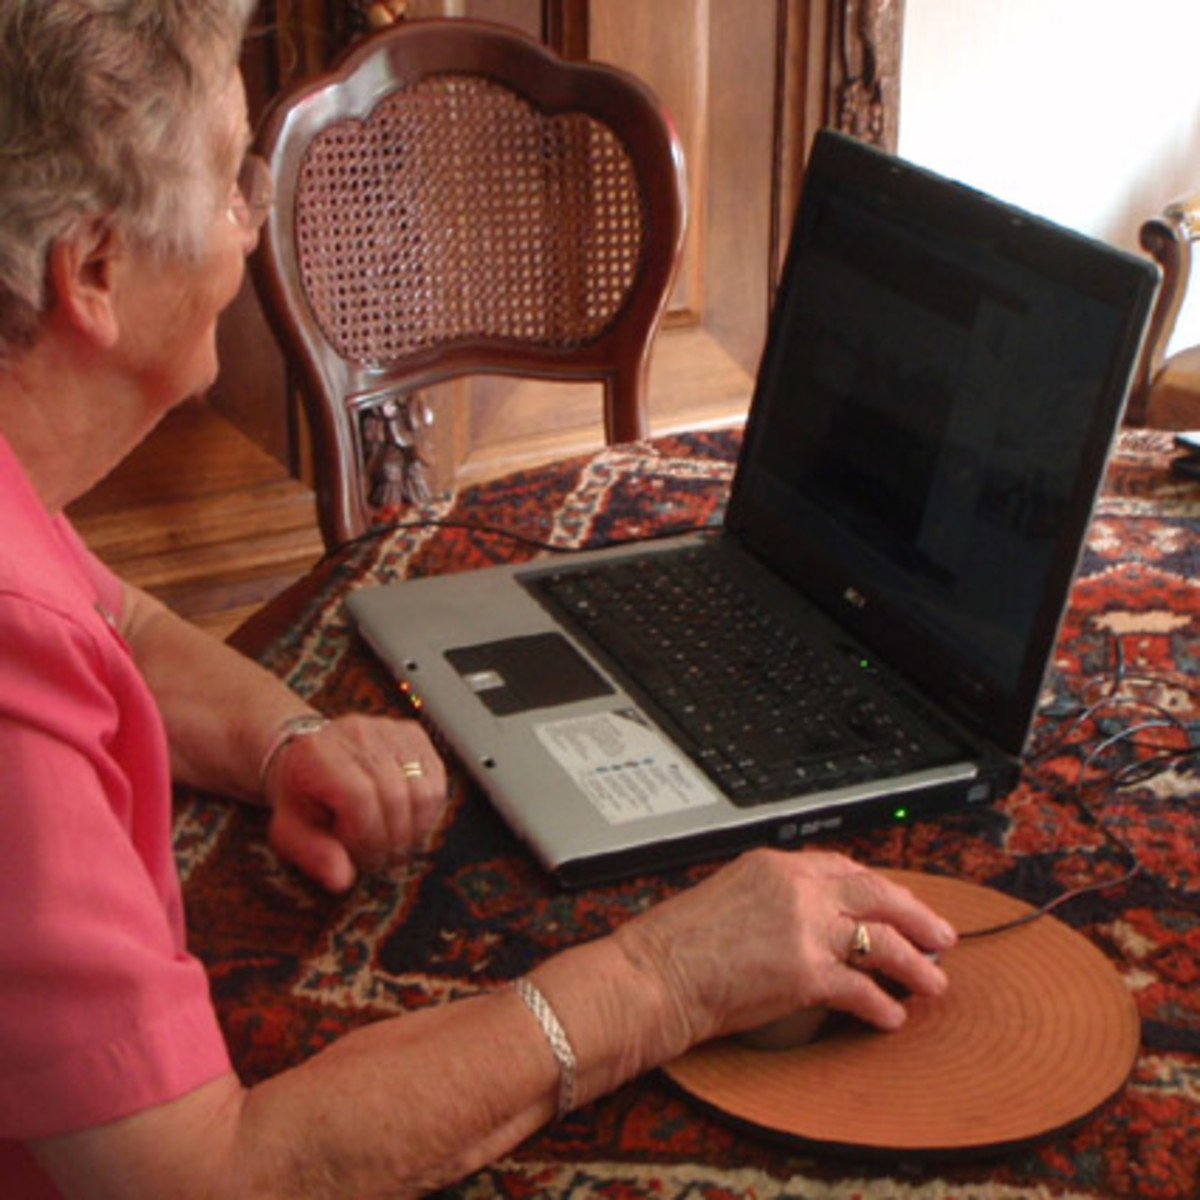 How to teach your grandma to use the computer